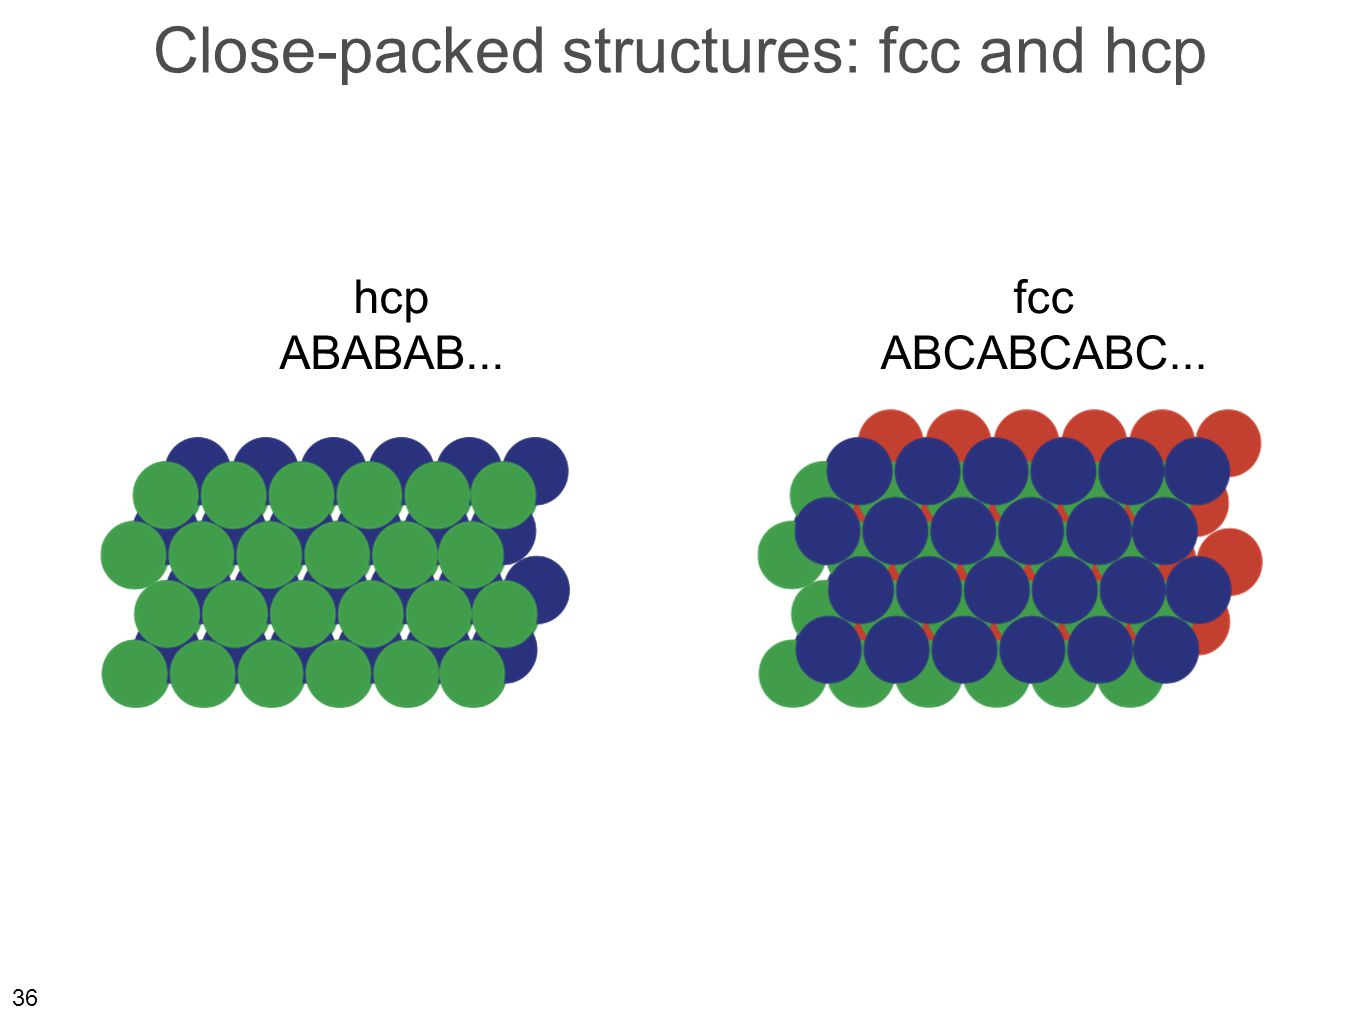 36 Close-packed structures: fcc and hcp hcp ABABAB... fcc ABCABCABC...